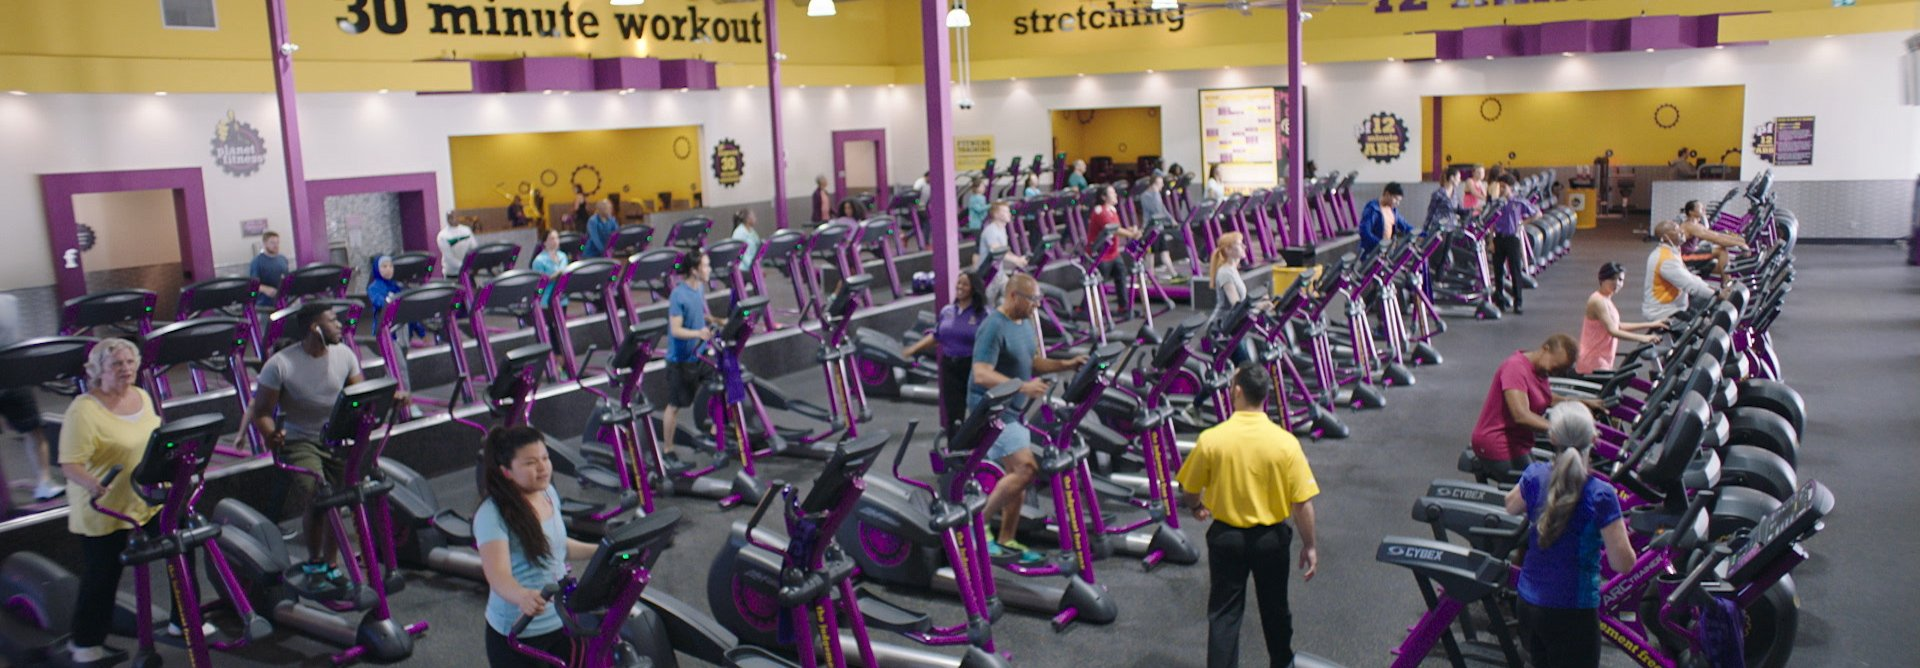 planet fitness club interior